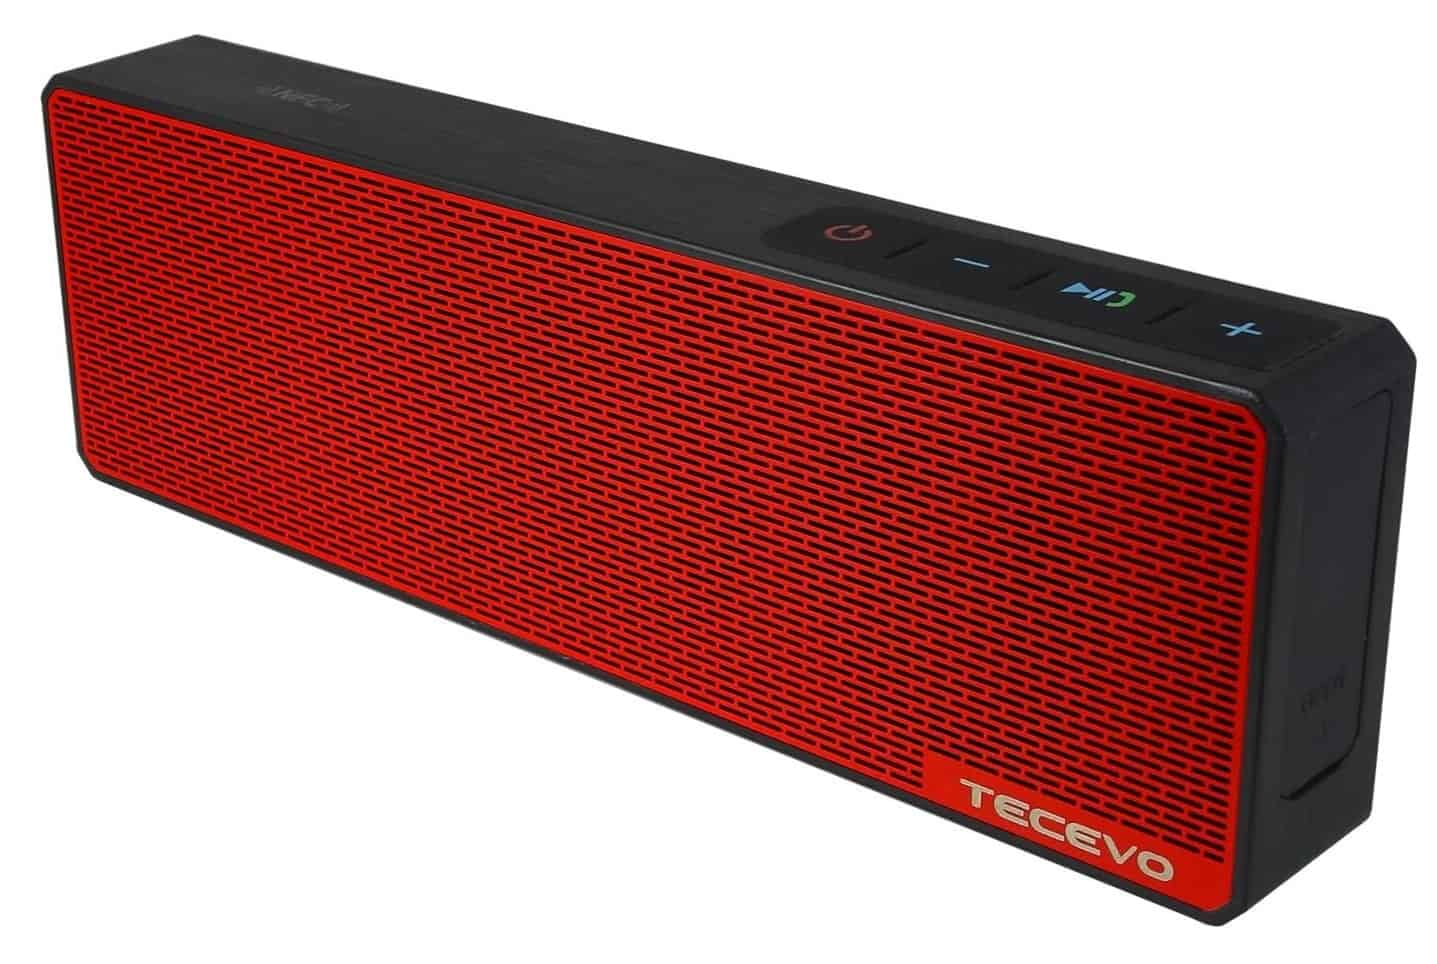 TECEVO T9 Slimline Bluetooth Speaker Review